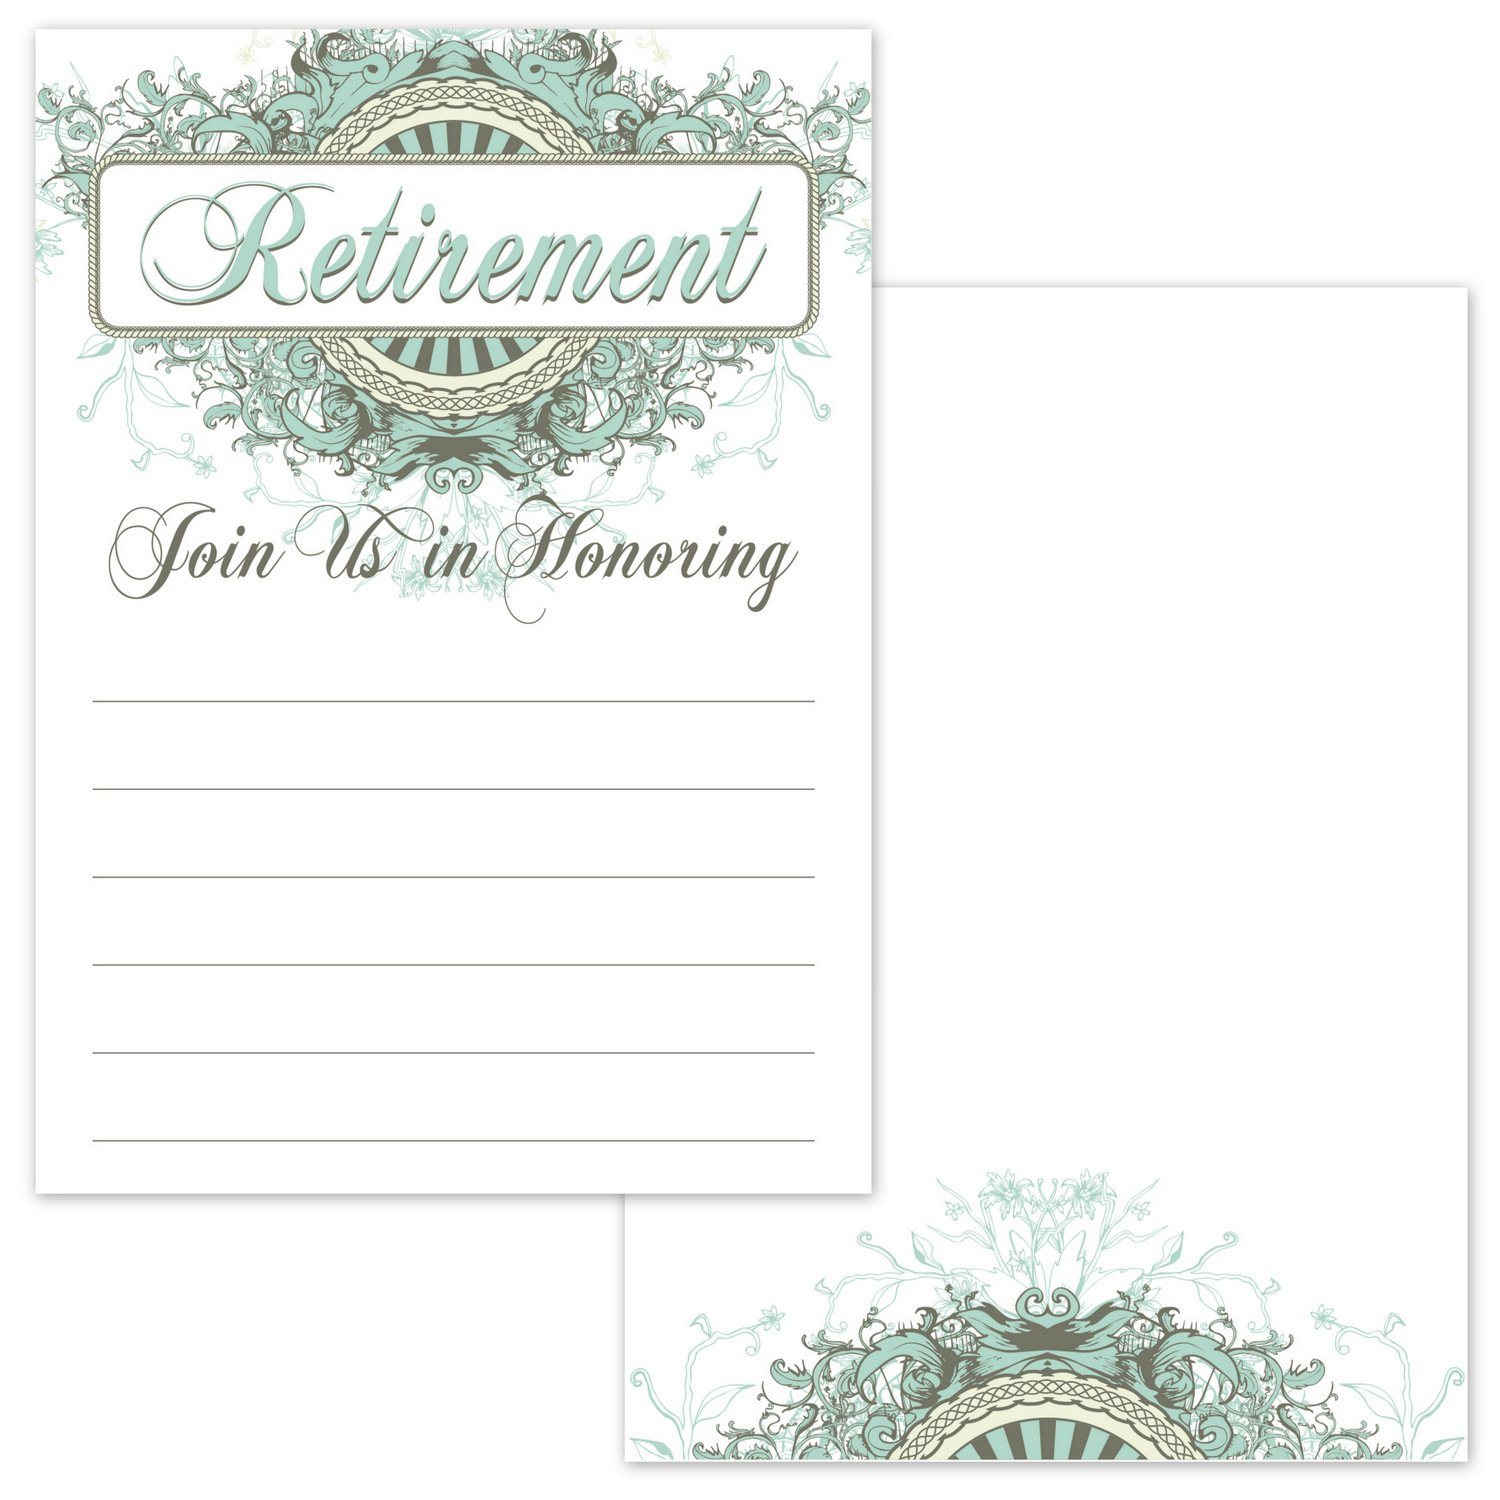 Elegant Fancy Retirement Party Invitations 20 Invitations With Envelopes Fill In The Blank Retirement Invites For Men And Women